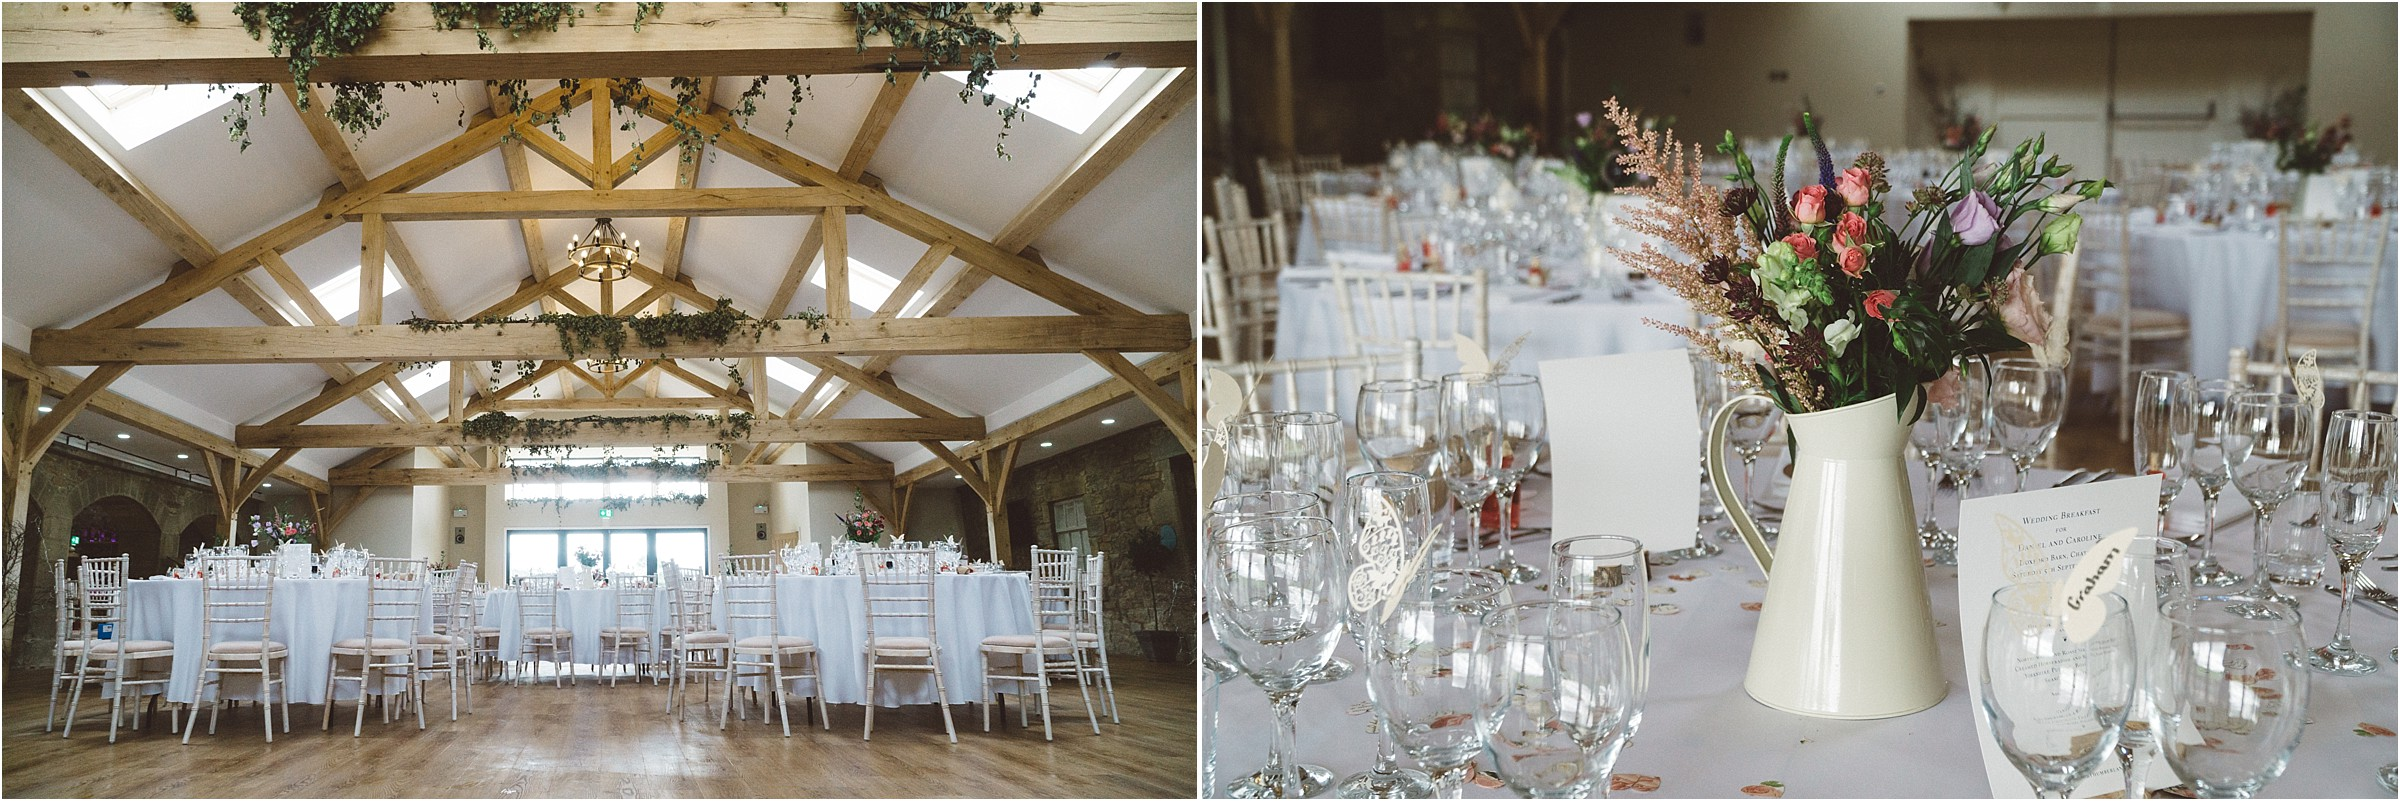 wedding reception at doxford barns northumberland